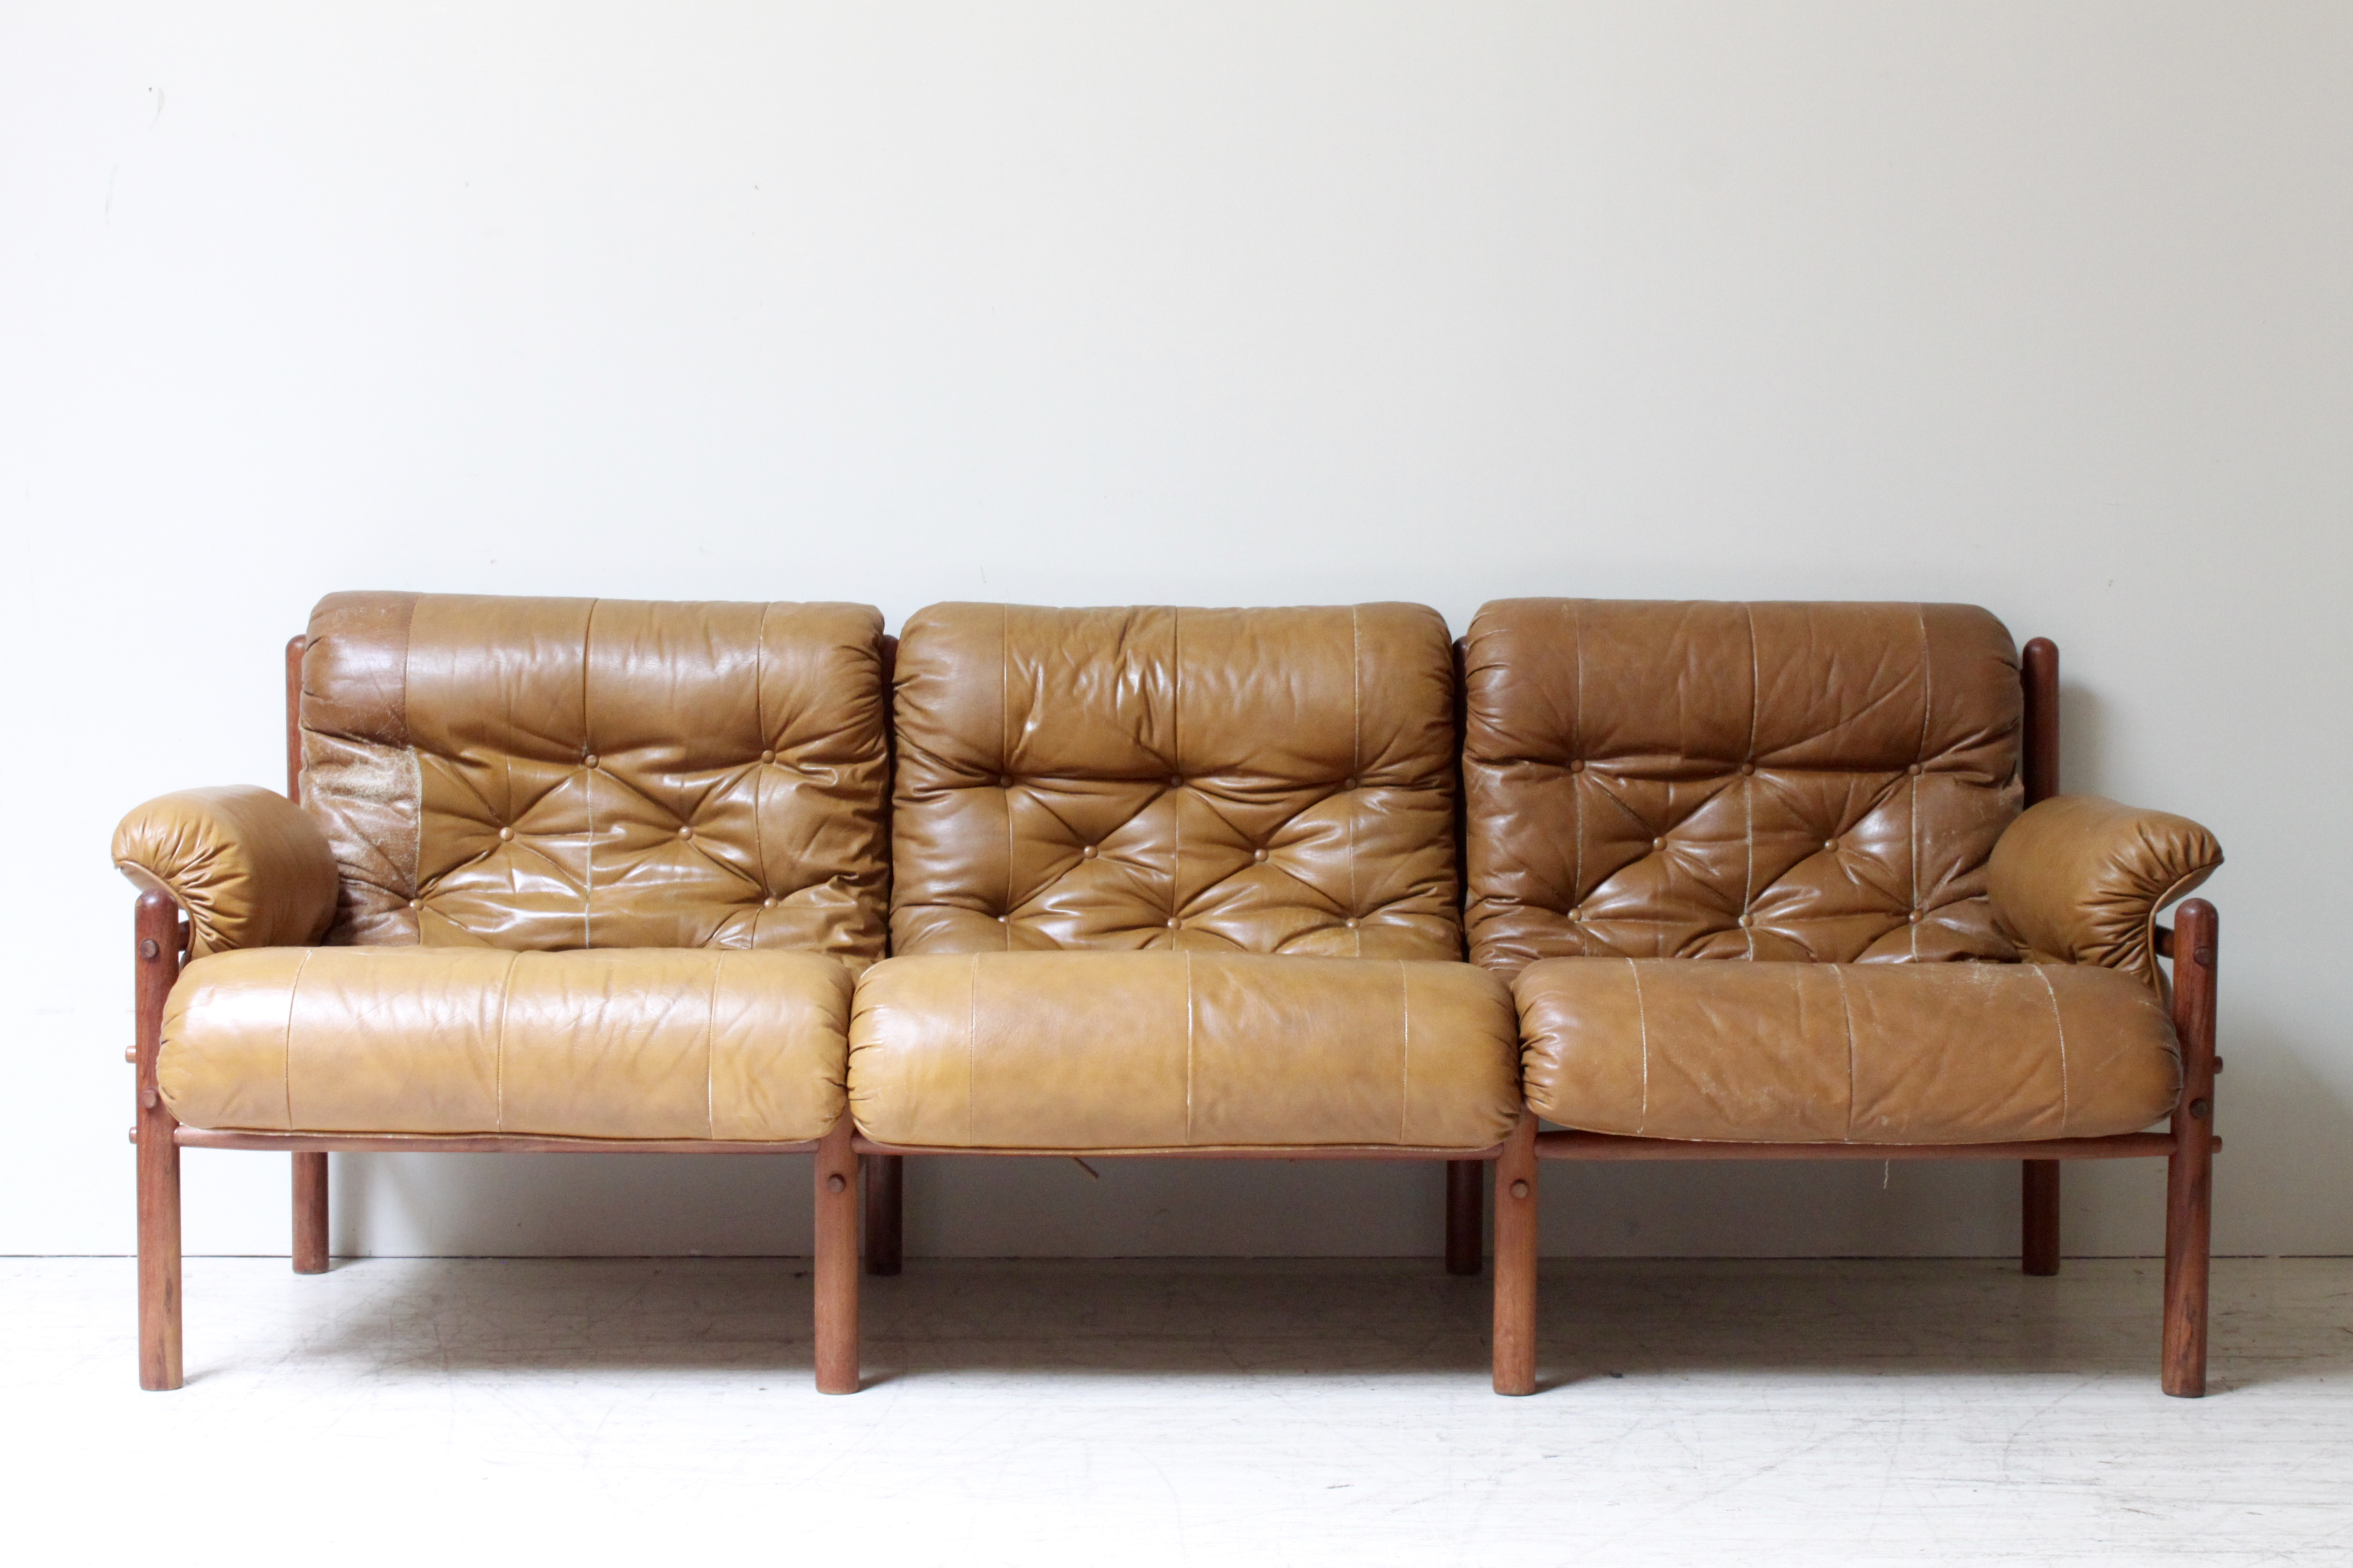 arne norell midcentury leather sofa image 2 of 7